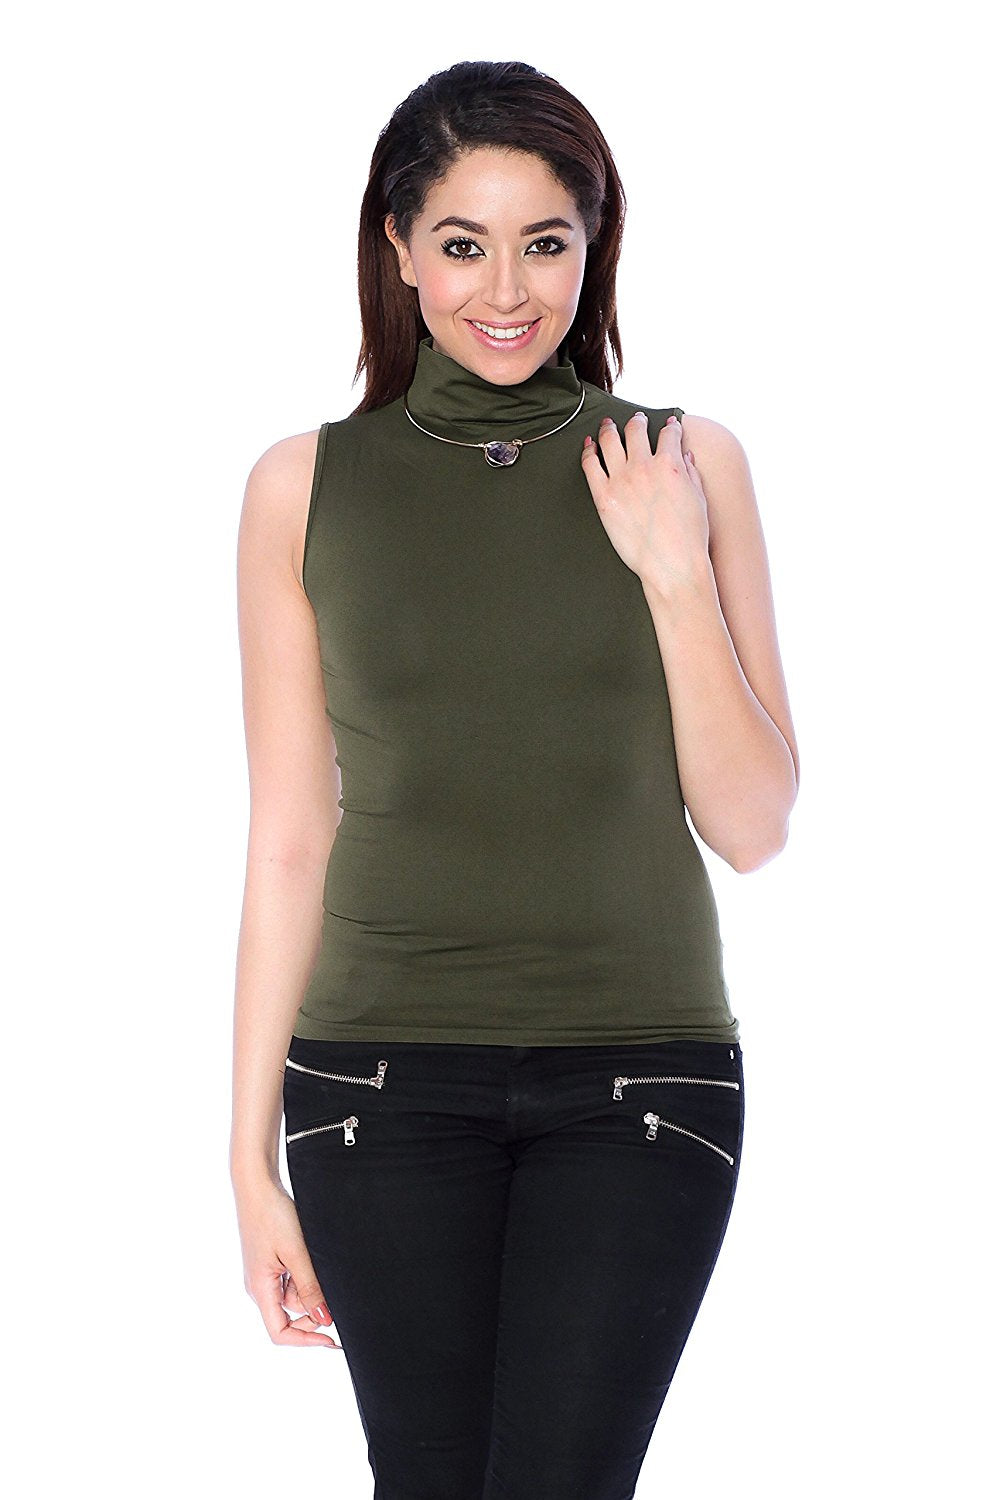 Khanomak High Mock Neck Sleeveless Plain Solid Basic Stretch One Size Tank Top